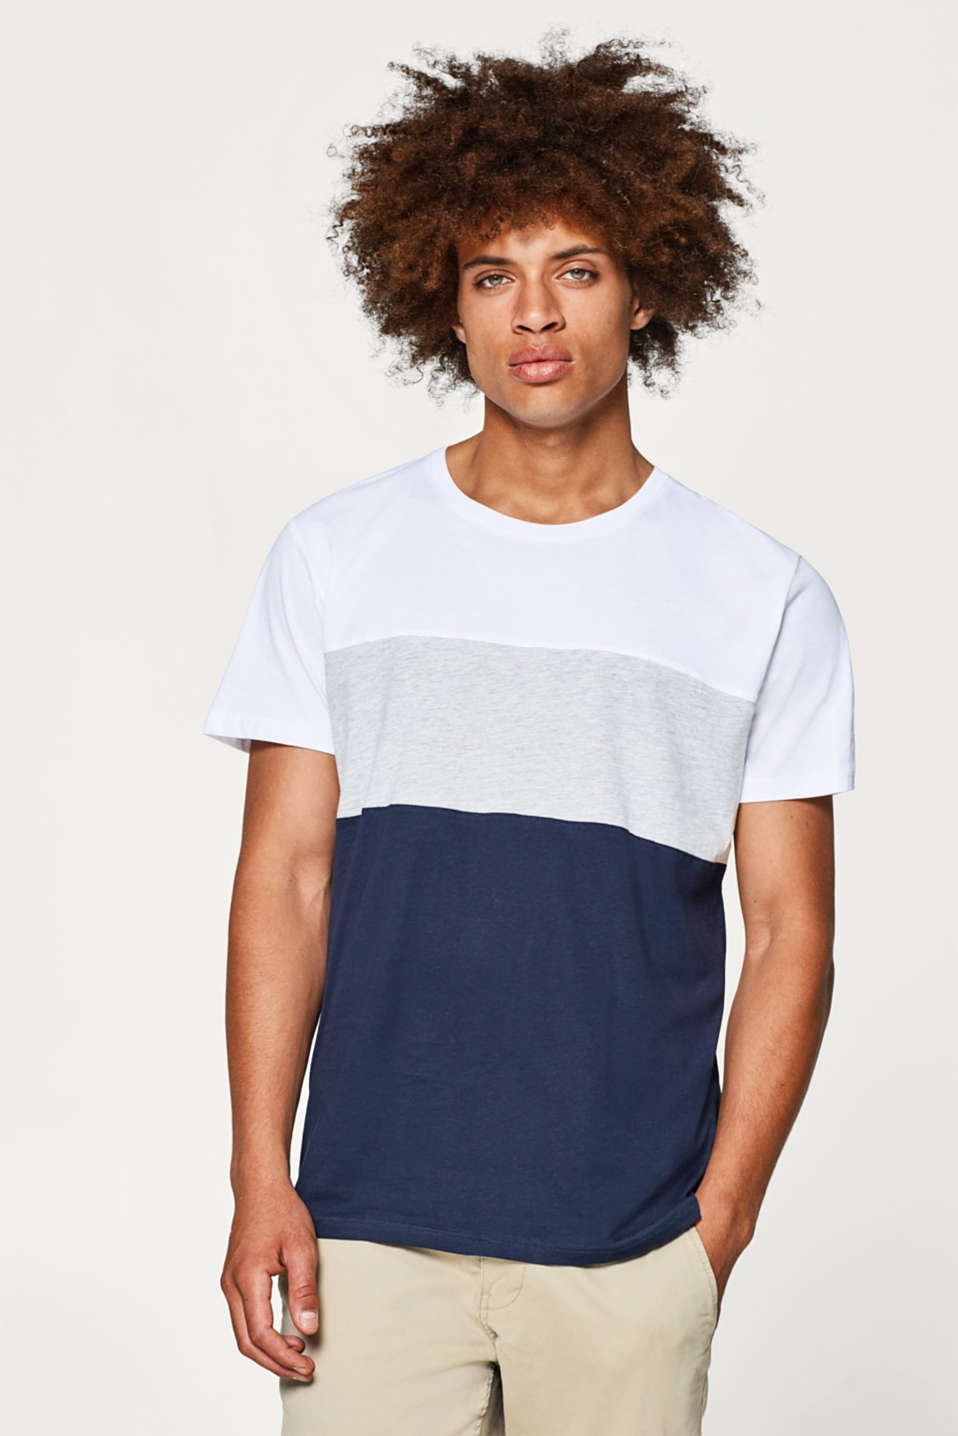 edc - Colour block jersey T-shirt, cotton blend